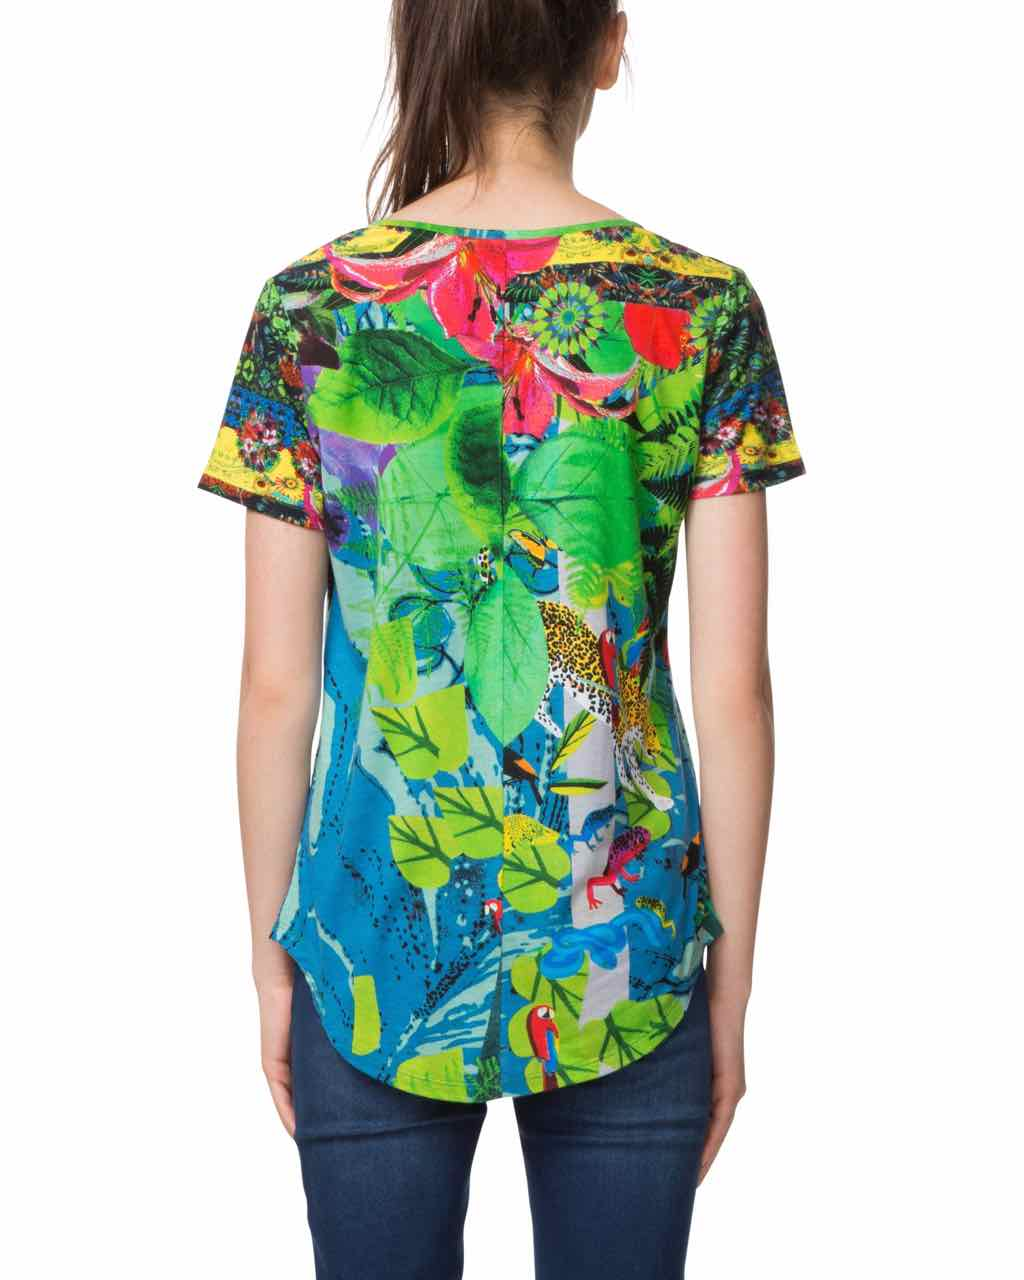 desigual t shirt the logical song 18swtkga buy online canada us. Black Bedroom Furniture Sets. Home Design Ideas